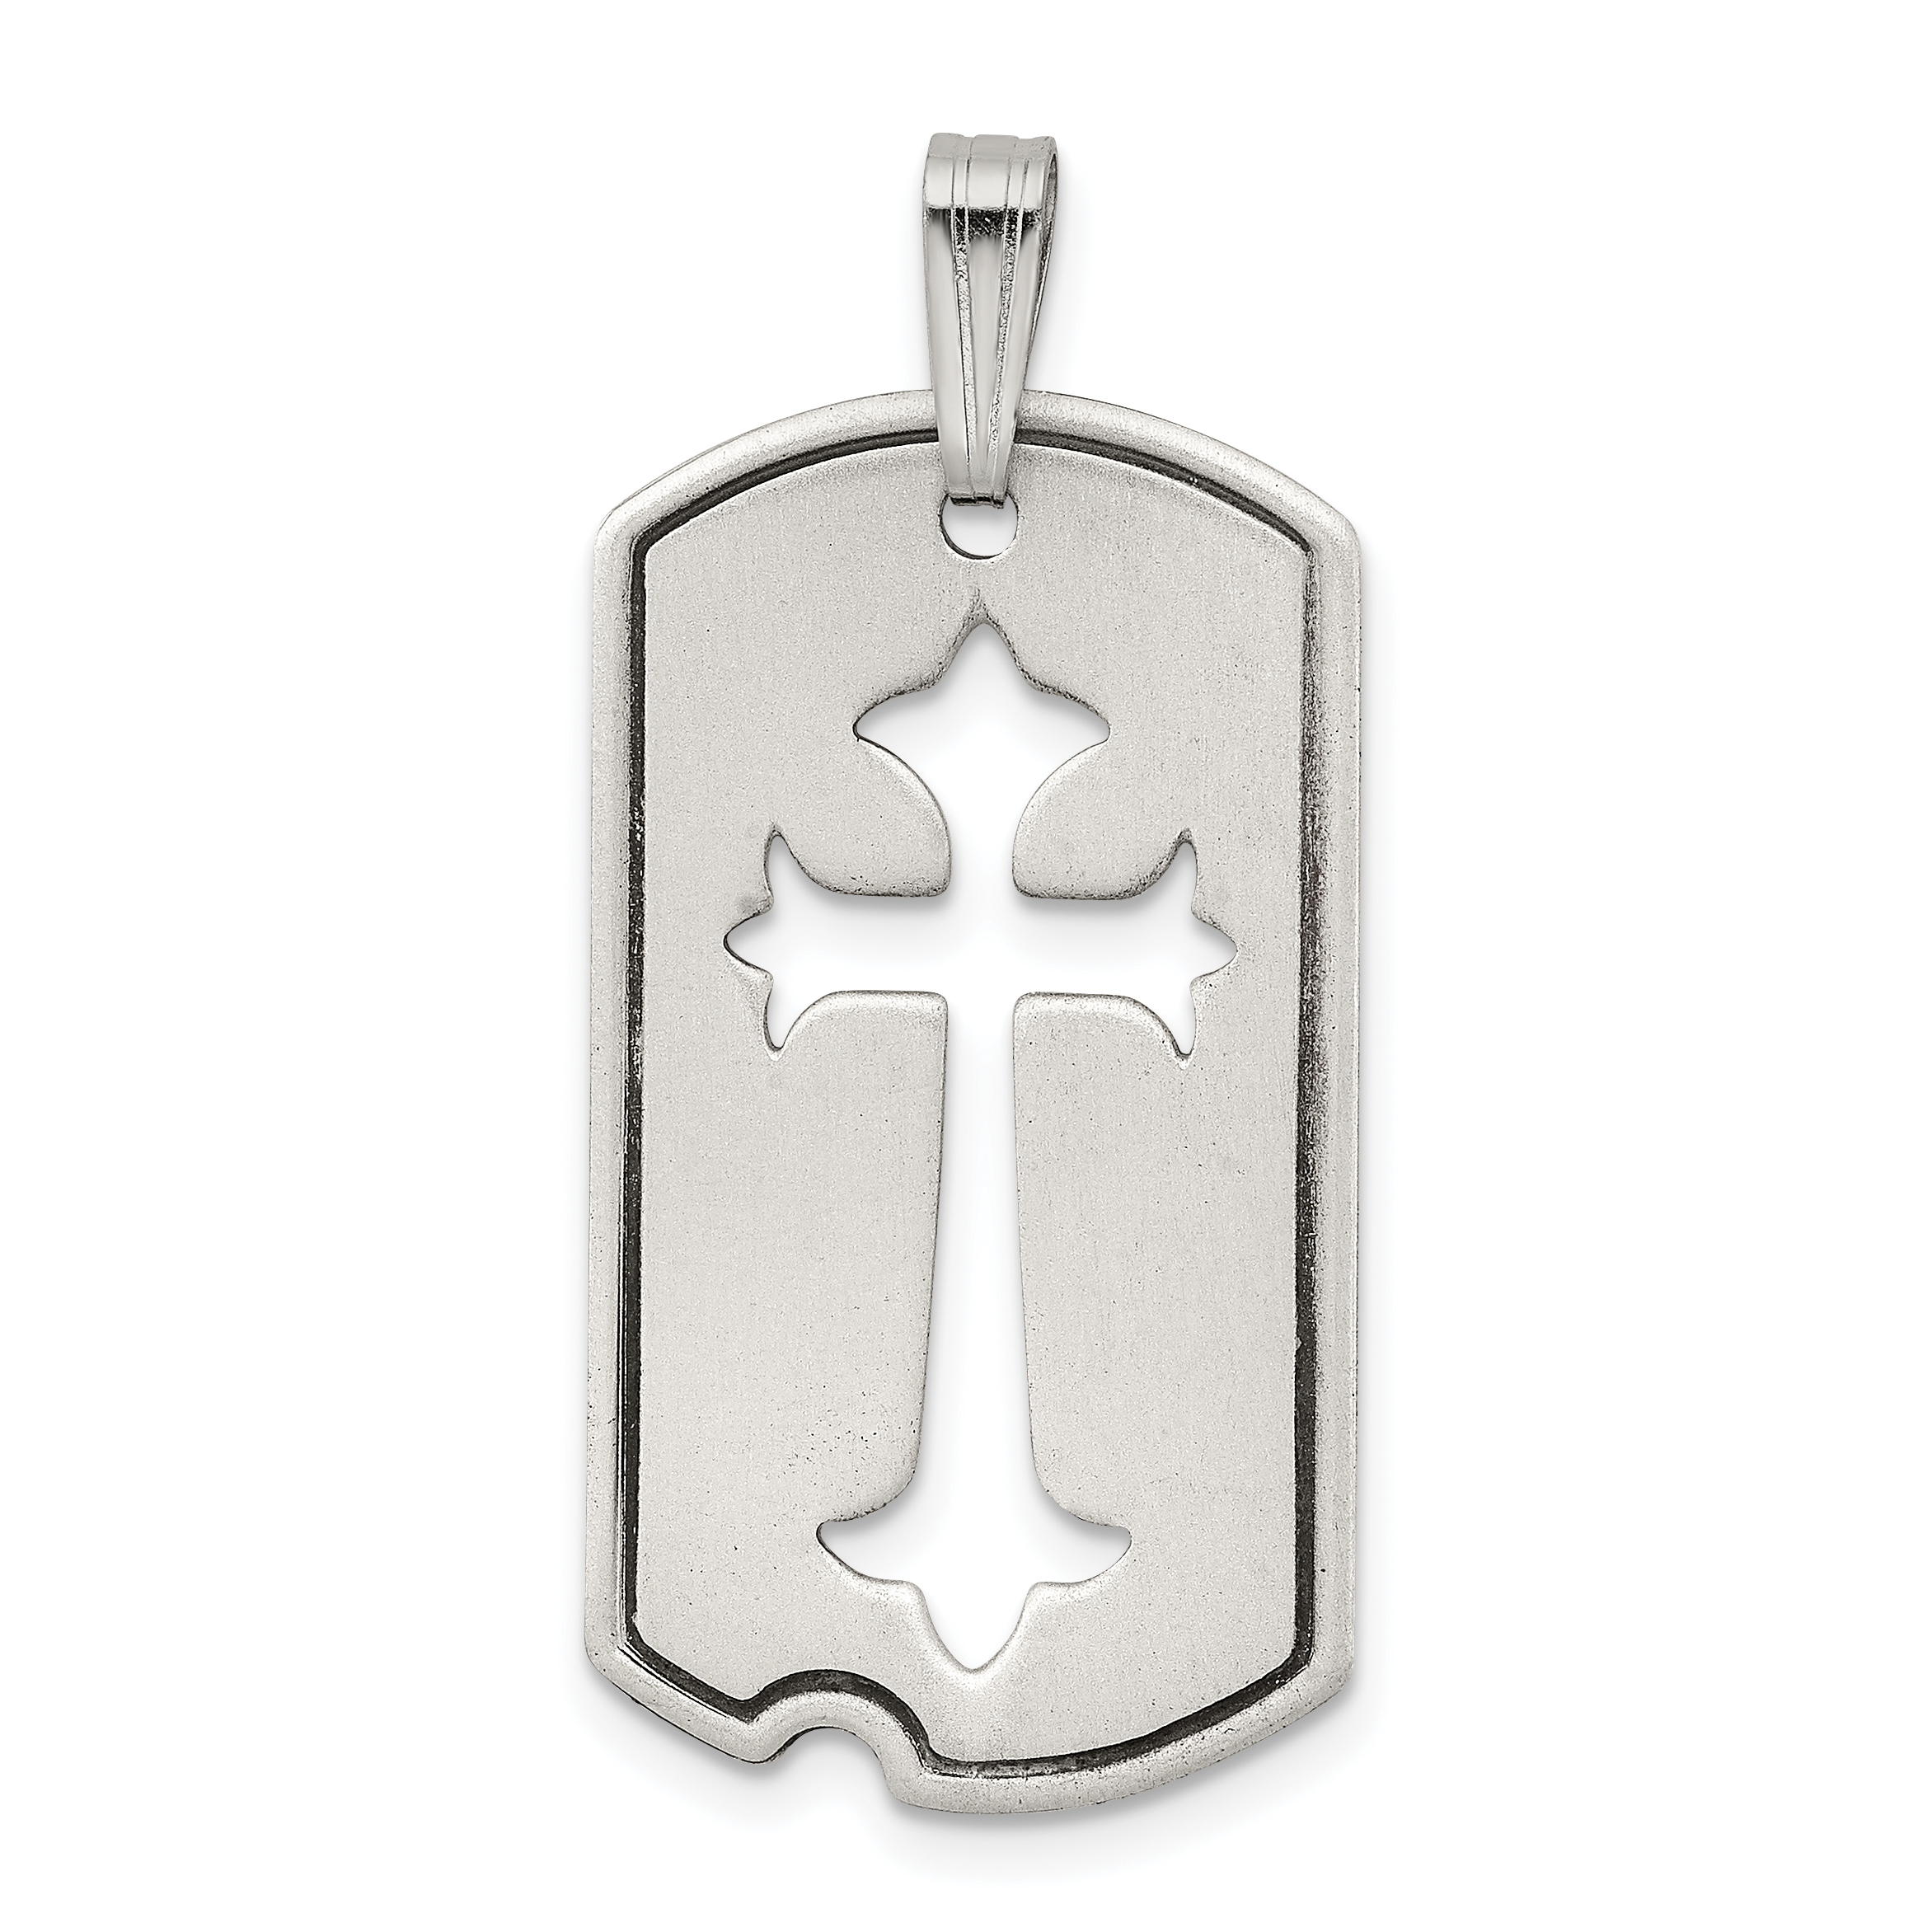 Sterling silver satin antiqued dog tag with cut out cross pendant sterling silver satin antiqued dog tag with cut out cross pendant weight 336 grams length 38mm width 16mm aloadofball Gallery